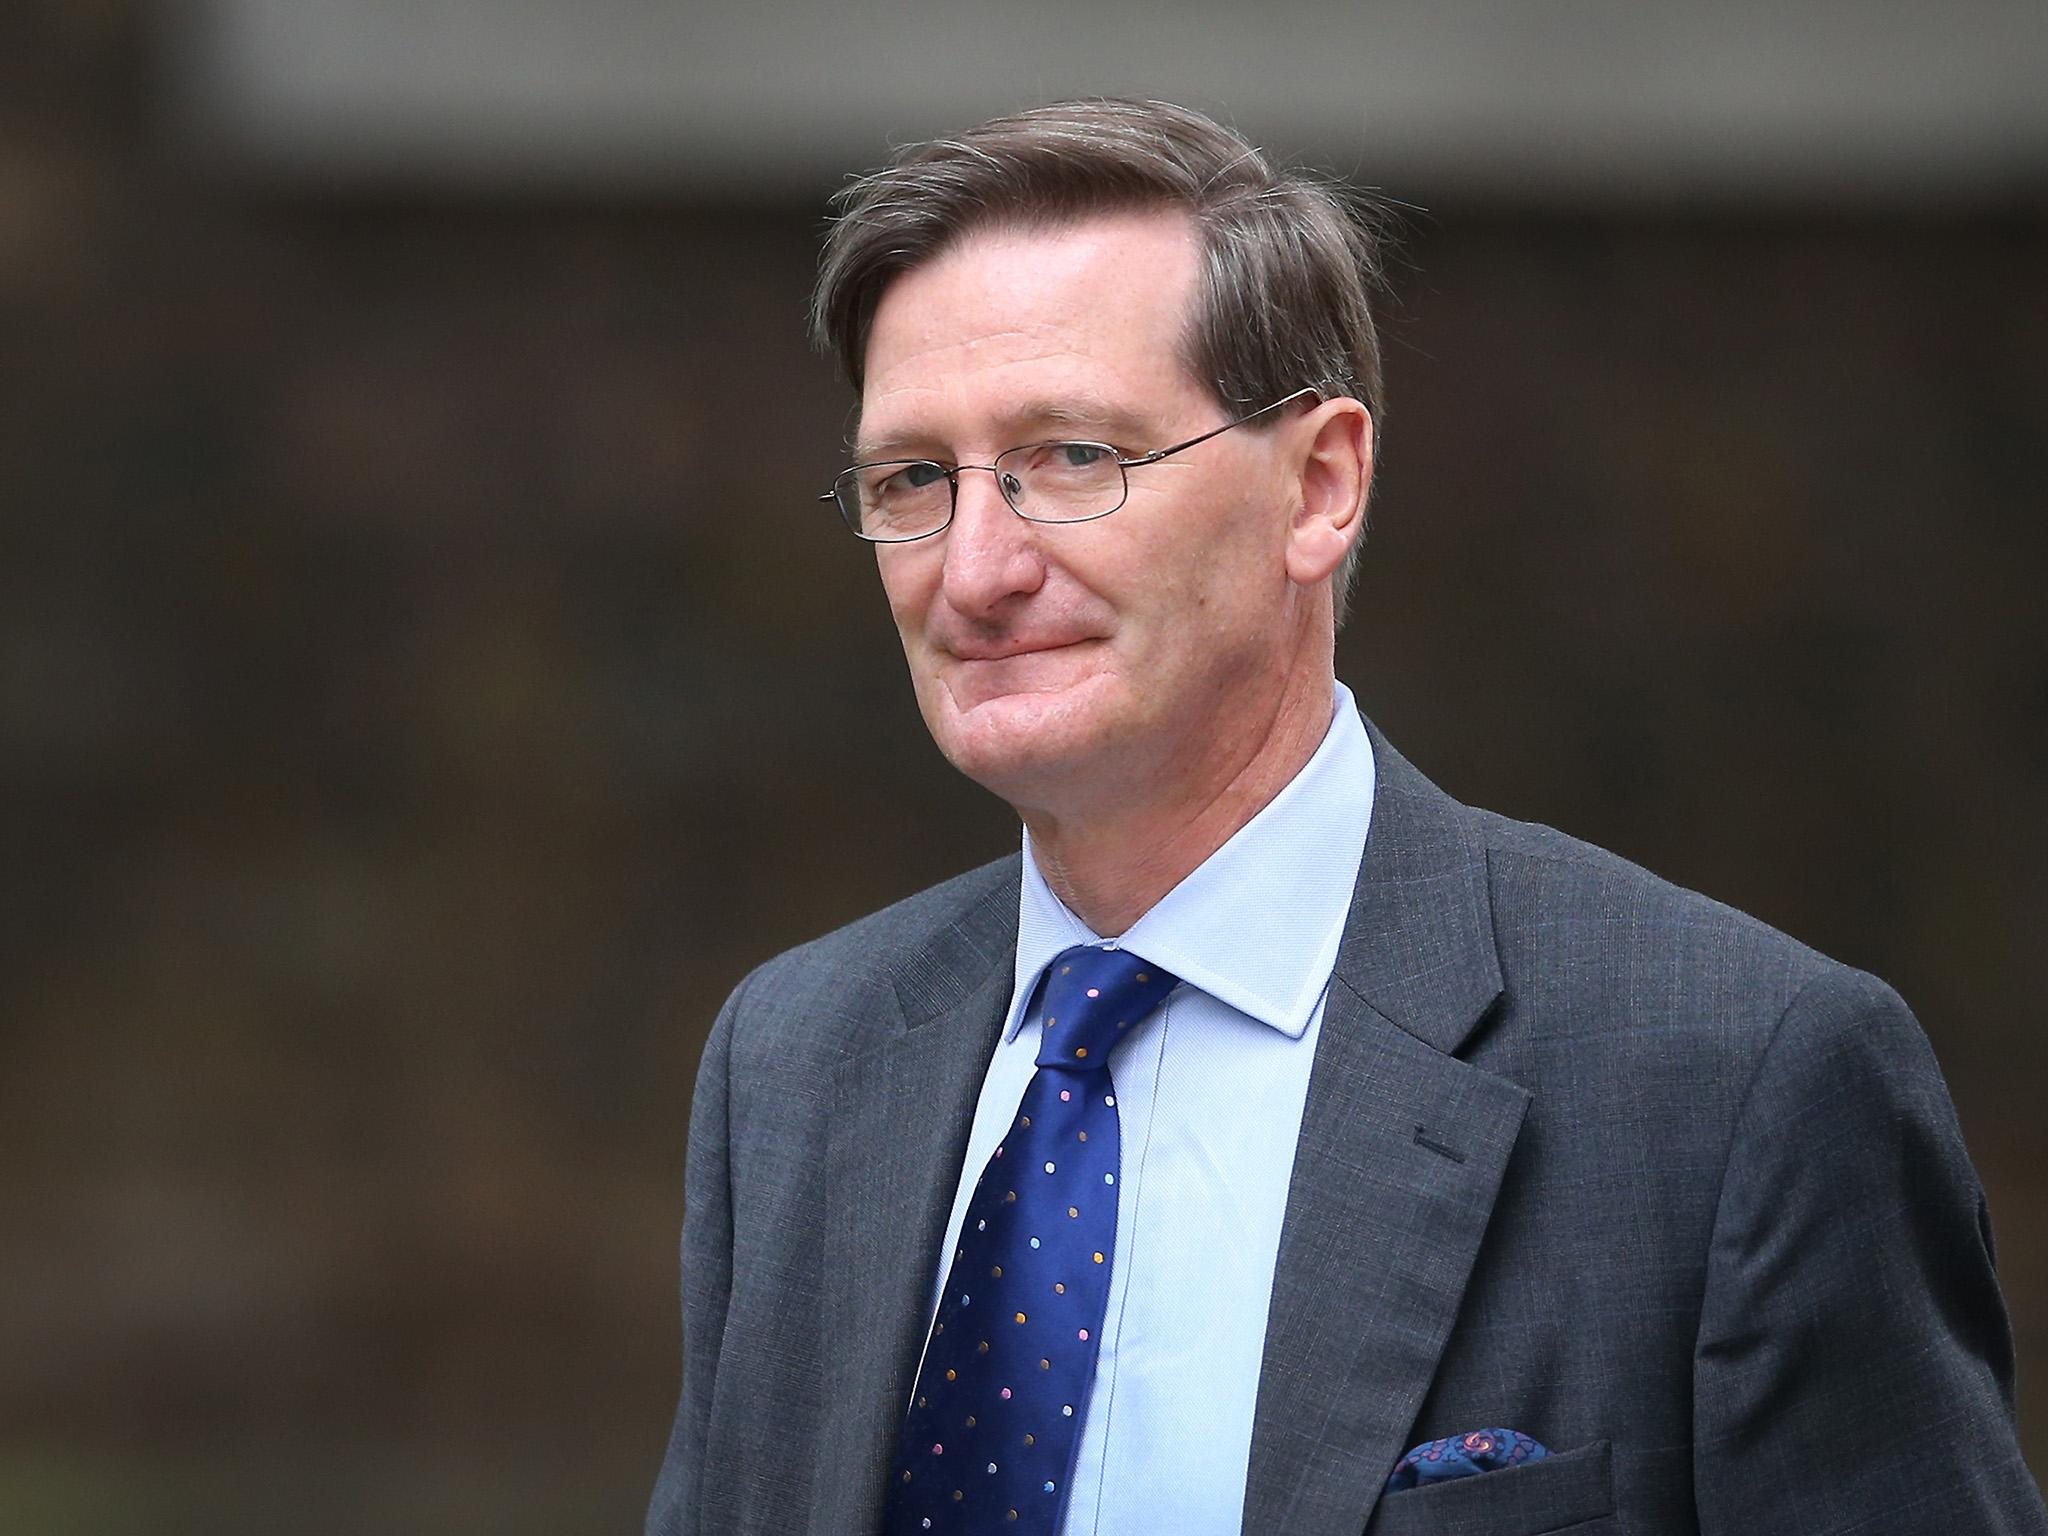 dominic grieve - photo #18